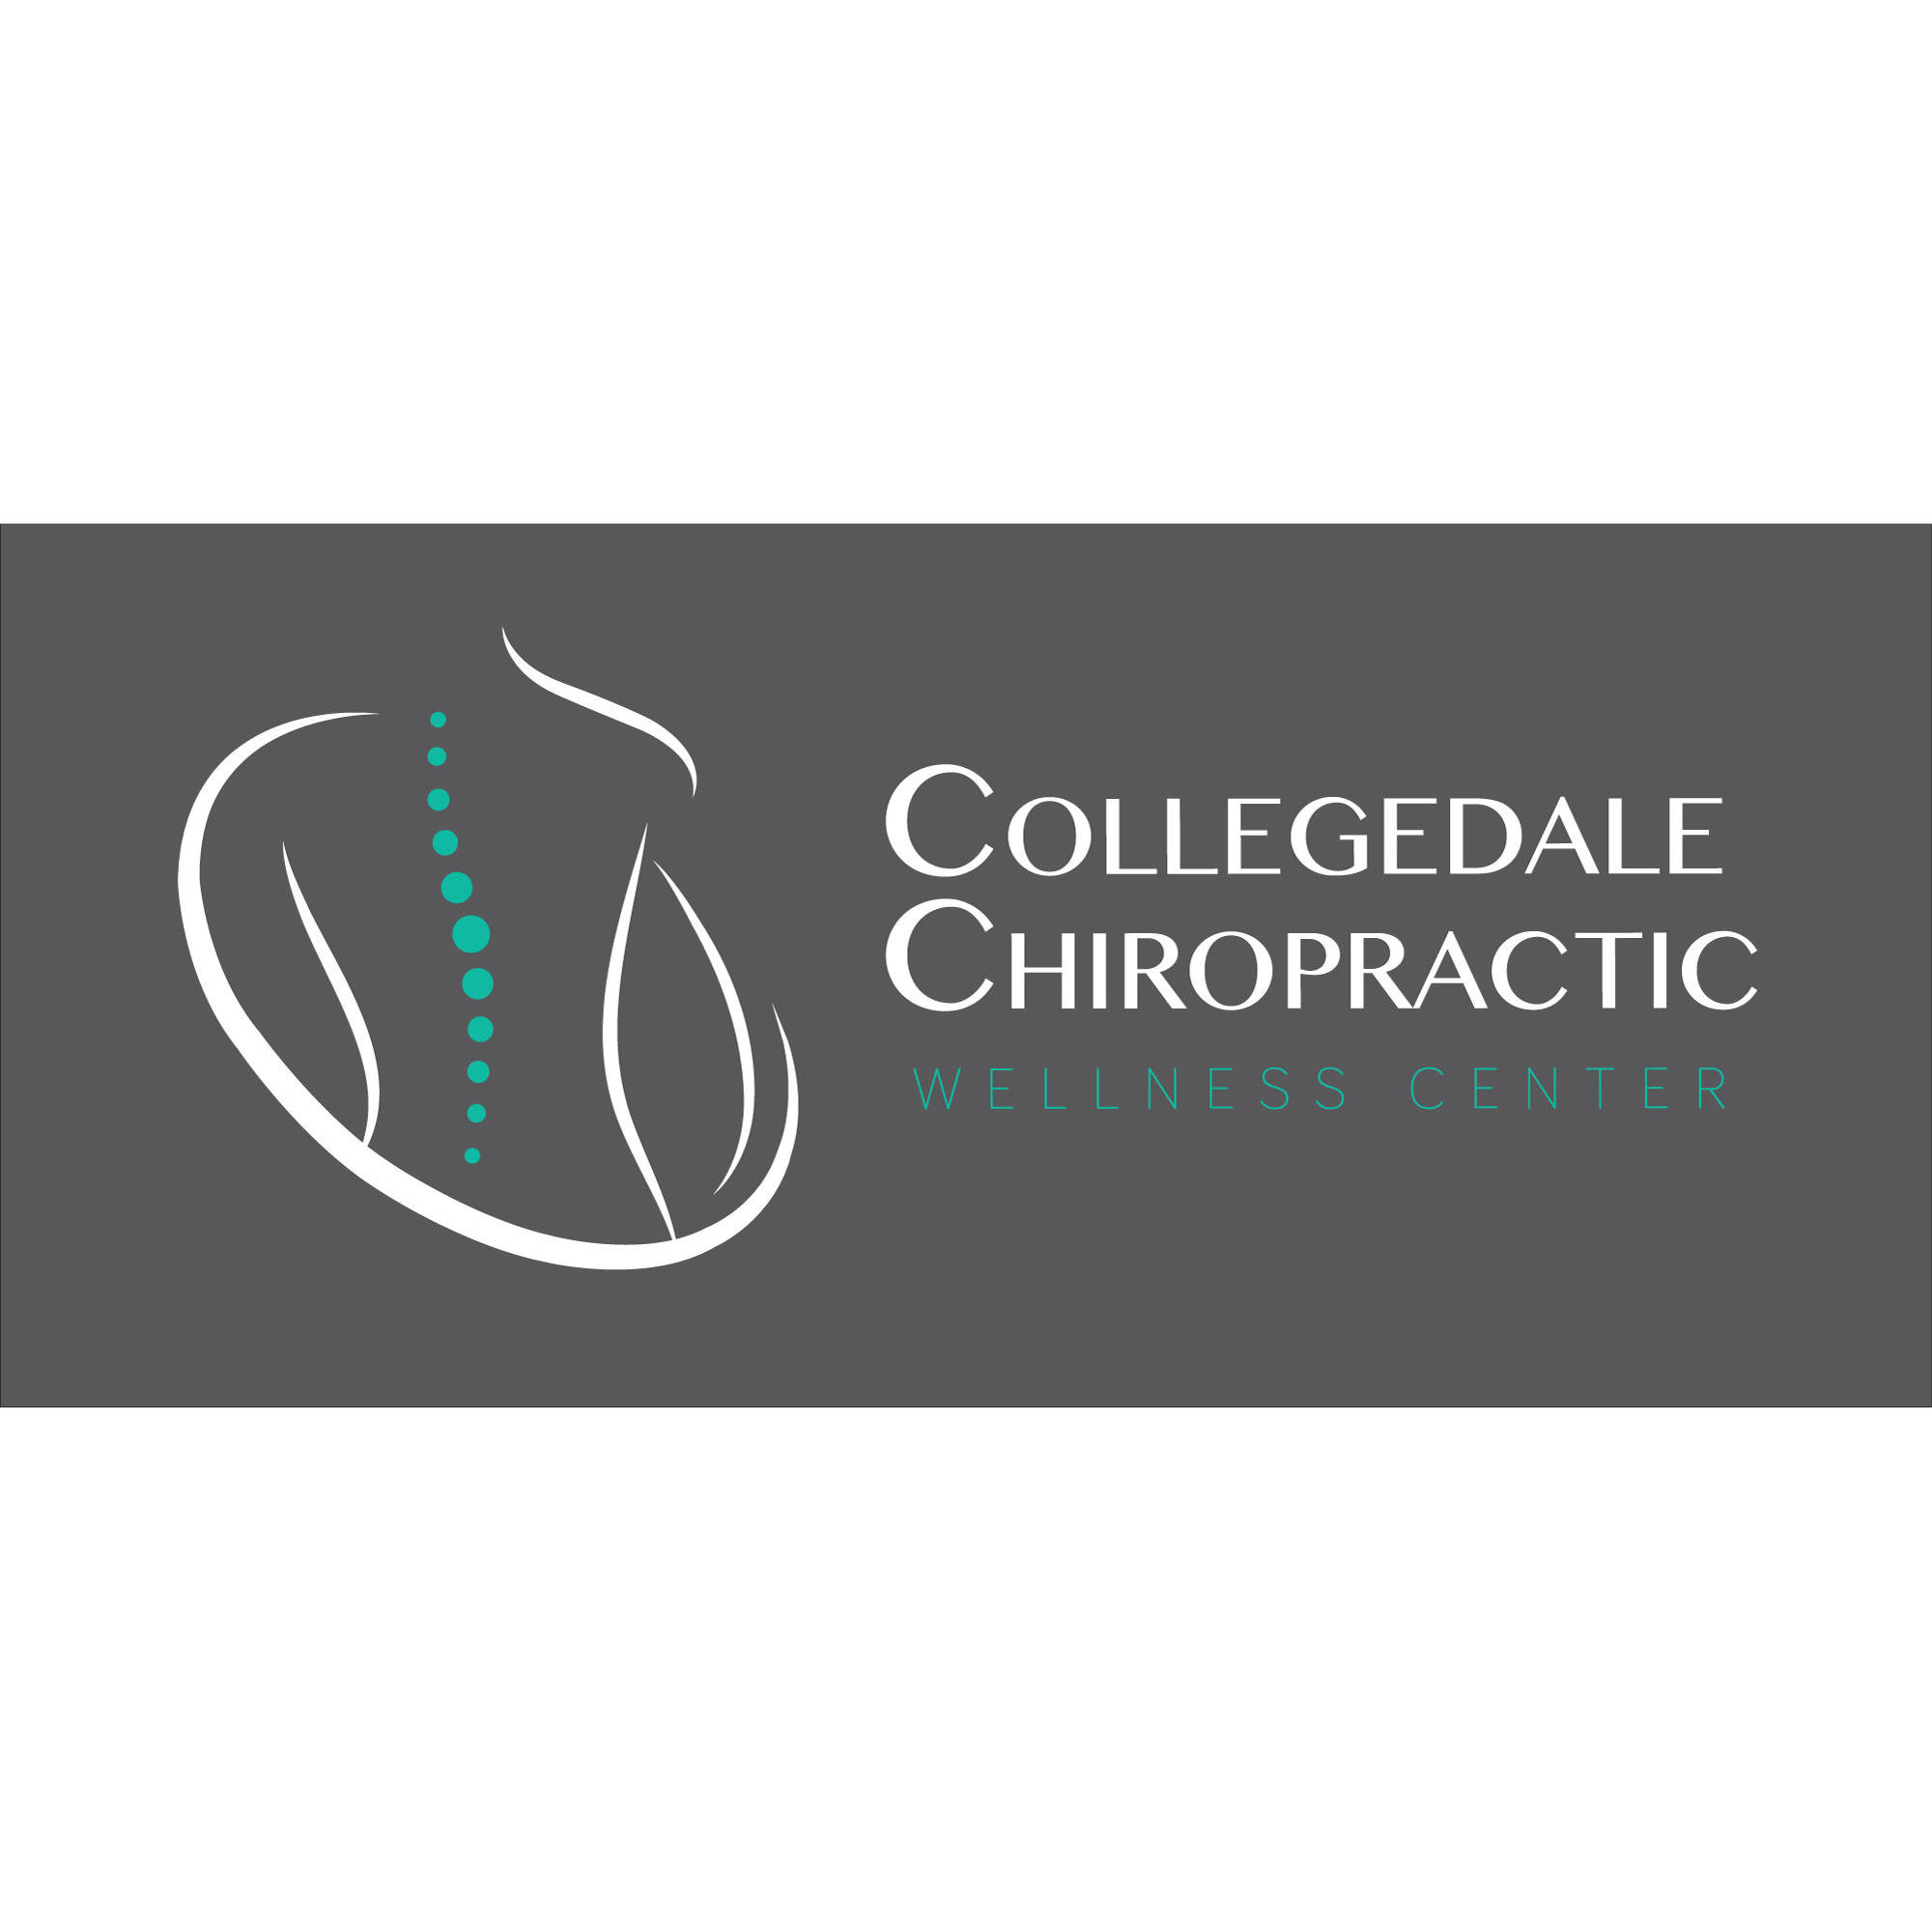 Collegedale Chiropractic